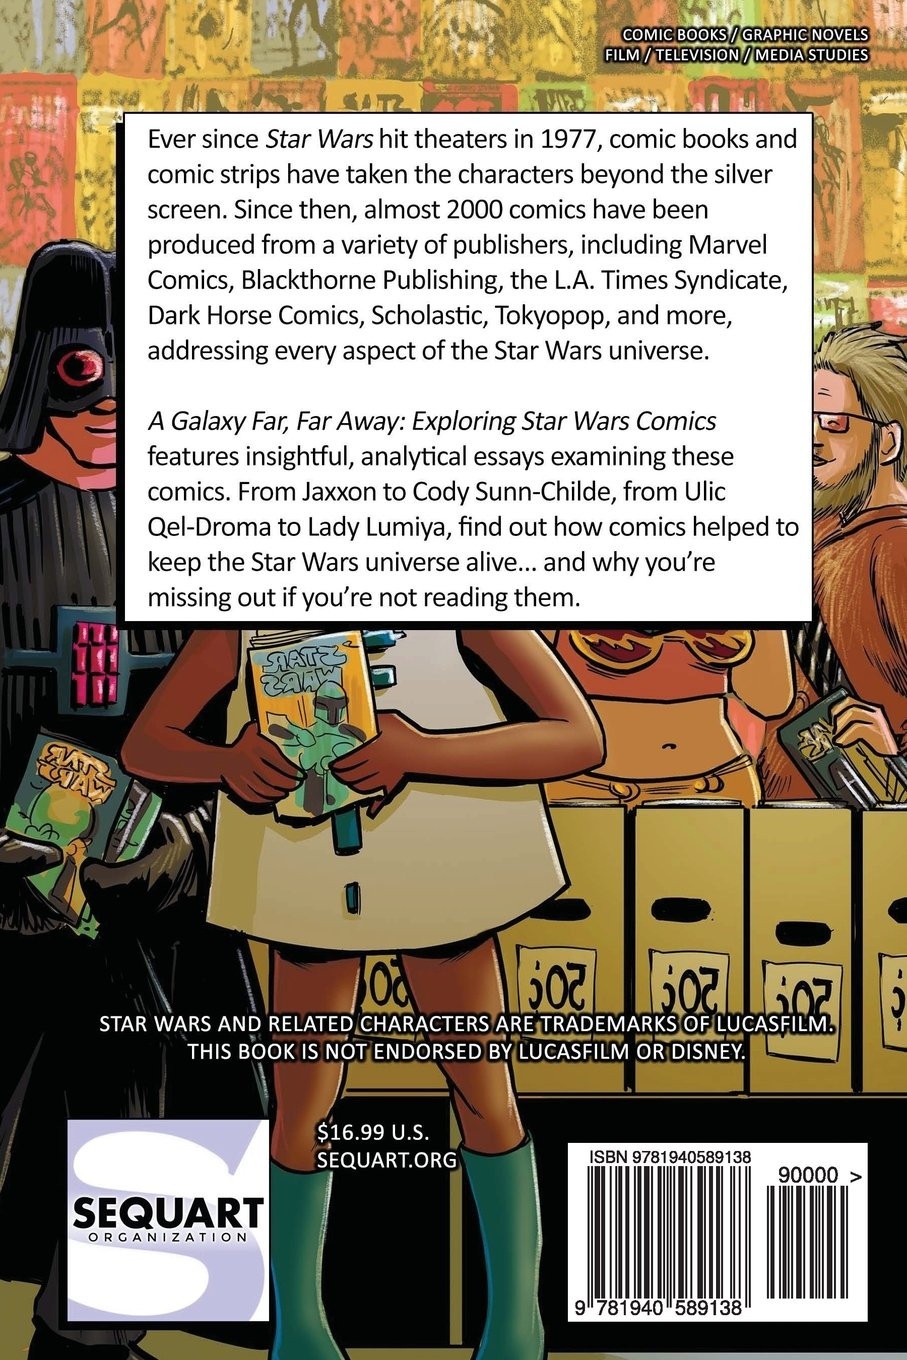 com a galaxy far far away exploring star wars comics com a galaxy far far away exploring star wars comics 9781940589138 joseph f berenato mike beidler joe bongiorno jean francois boivin